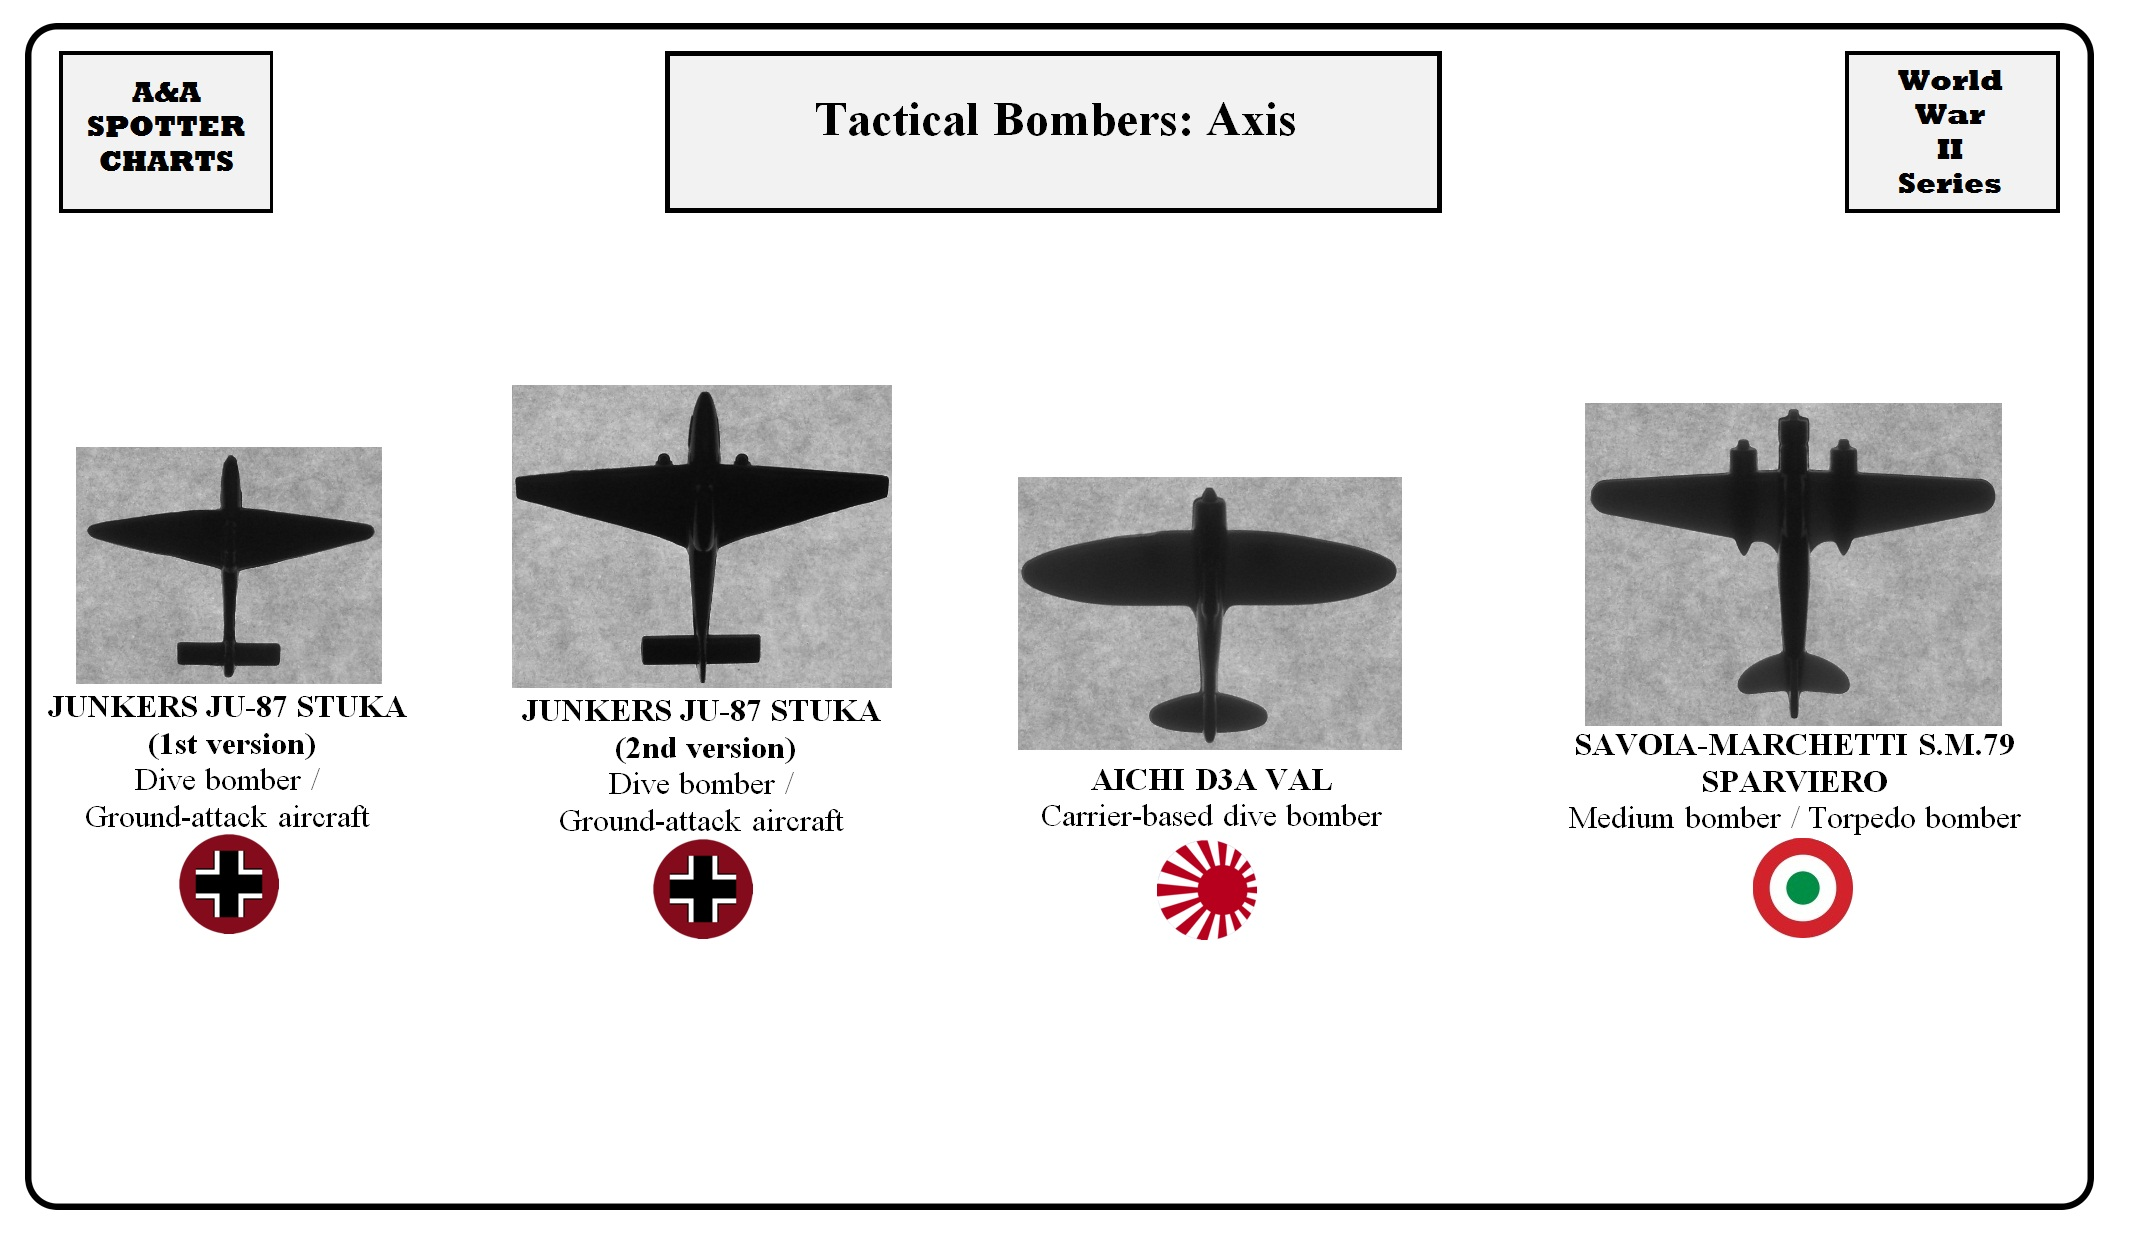 WW2-Air-Tactical Bombers-Axis.jpg